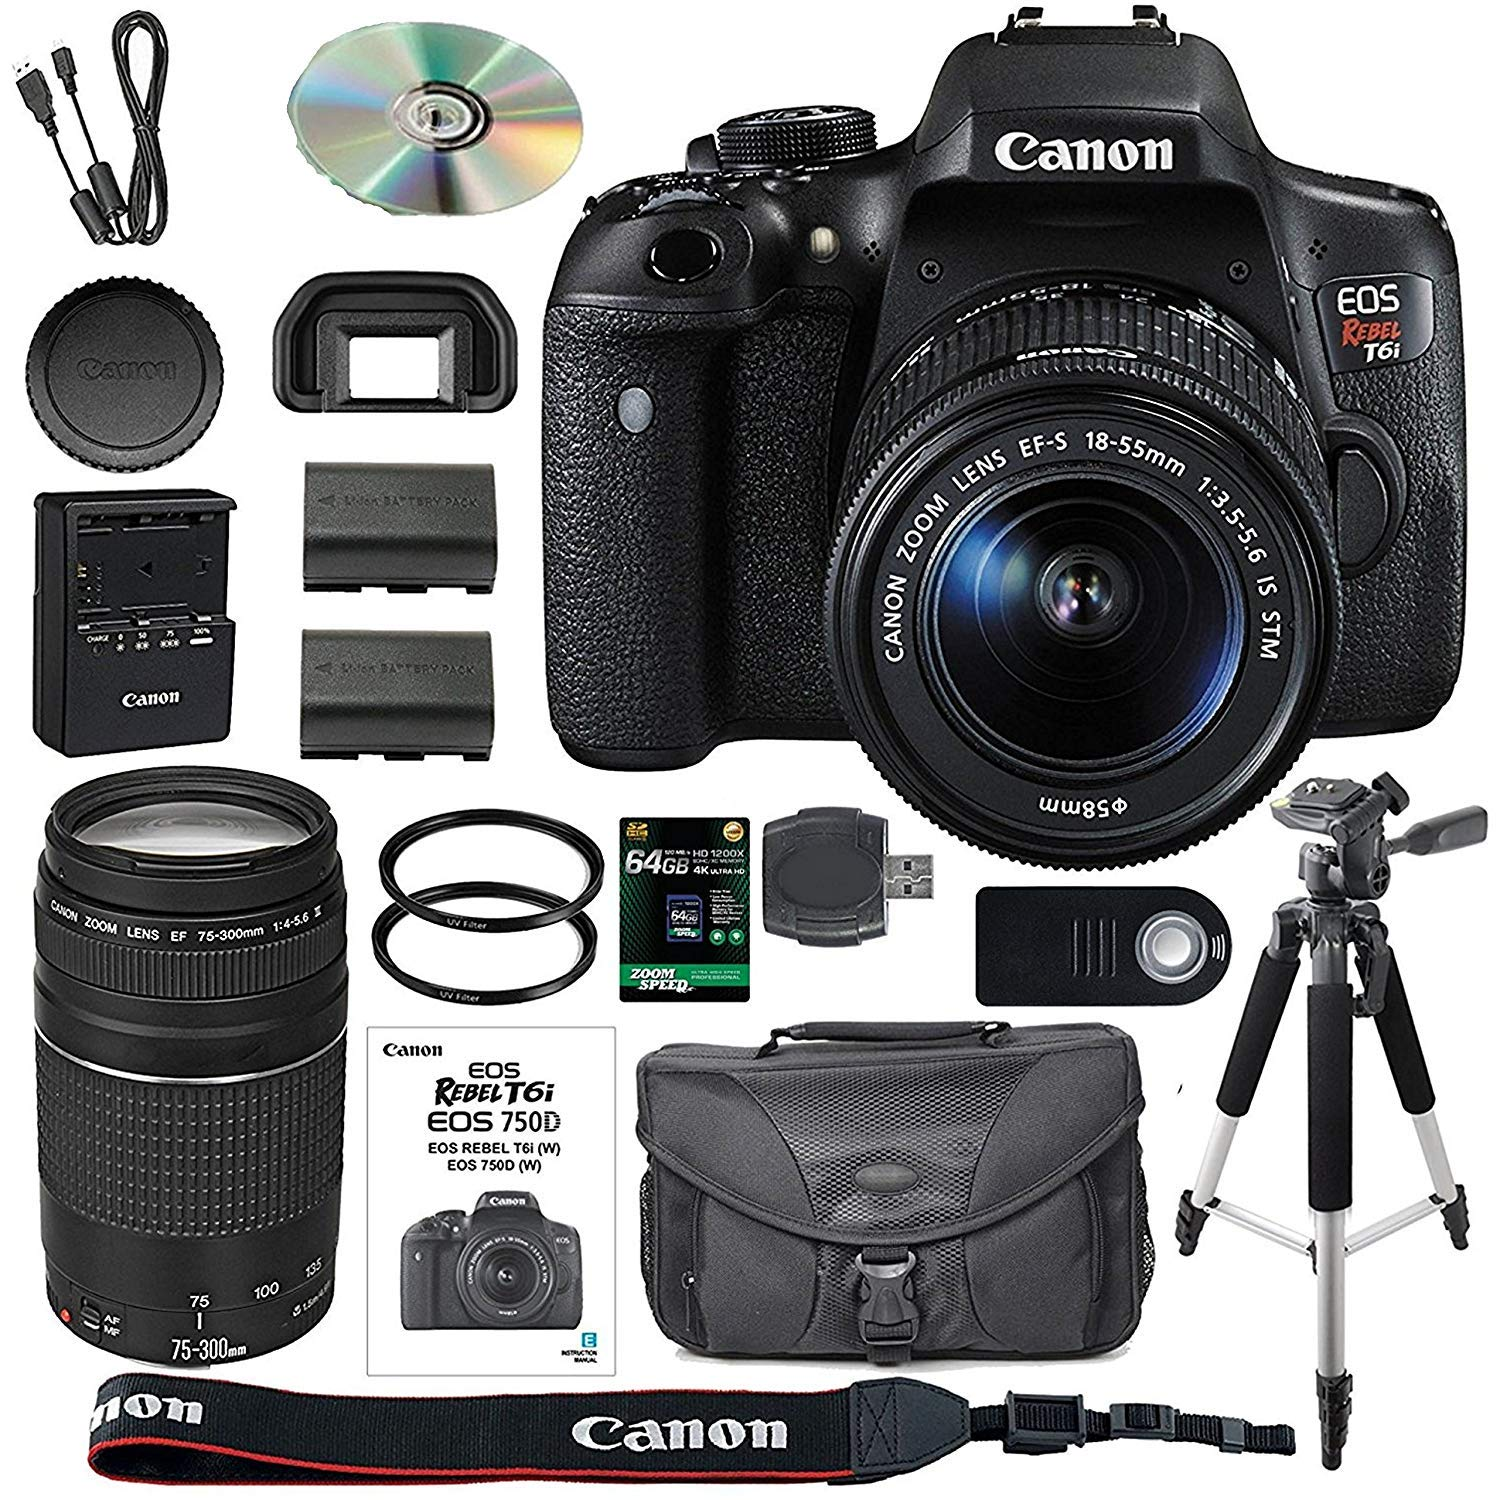 Canon Eos Rebel T6i Dslr Camera Bundle With Ef S 760d Body Only 760 Bo 18 55mm Is Stm Lens 75 300mm Iii 64gb Sdxc Memory Card Accessory Kit